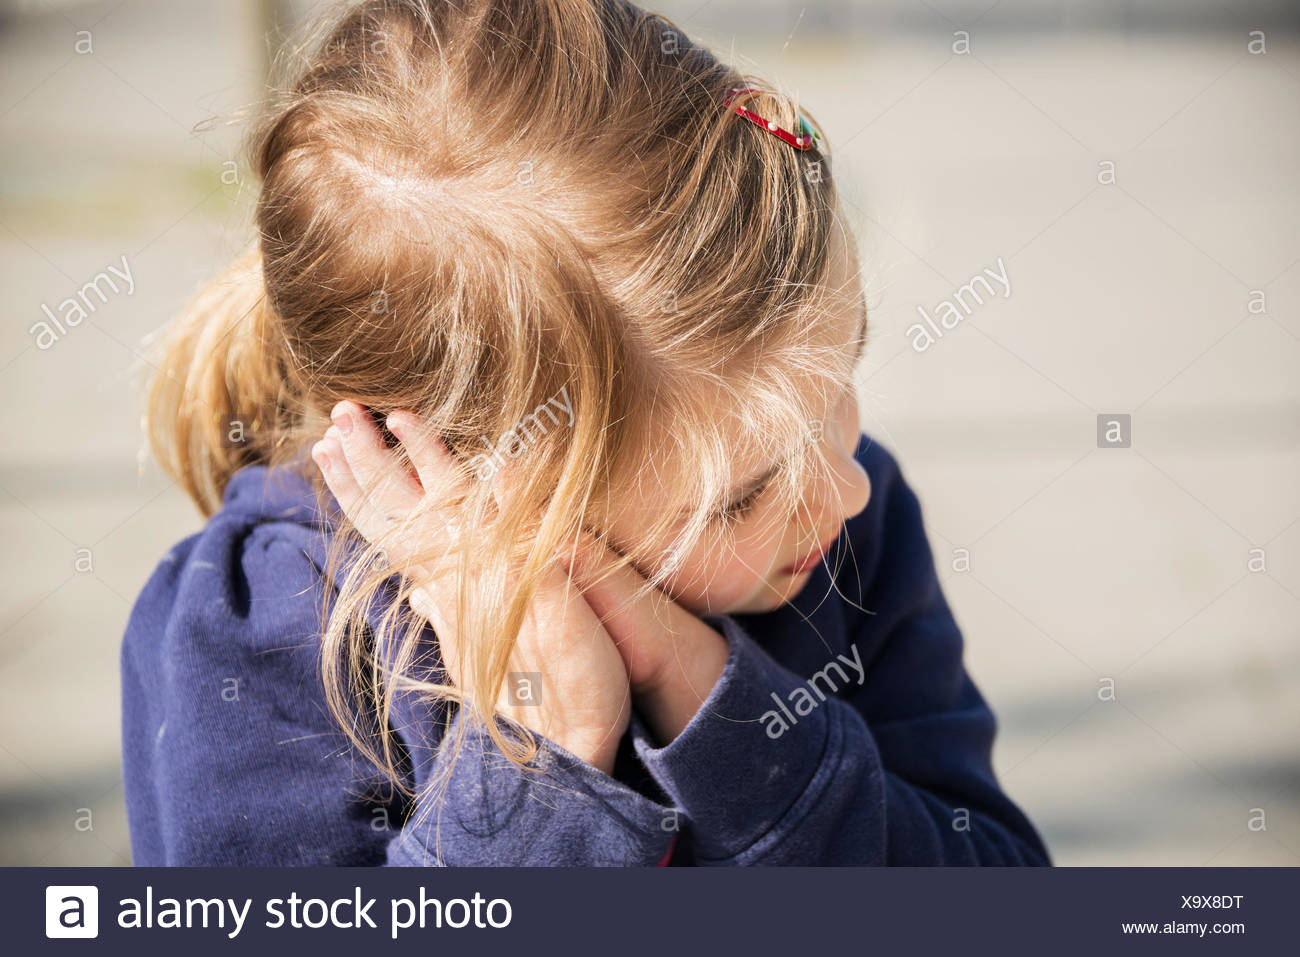 Blonde girl resting head in hands, Munich, Bavière, Allemagne Photo Stock